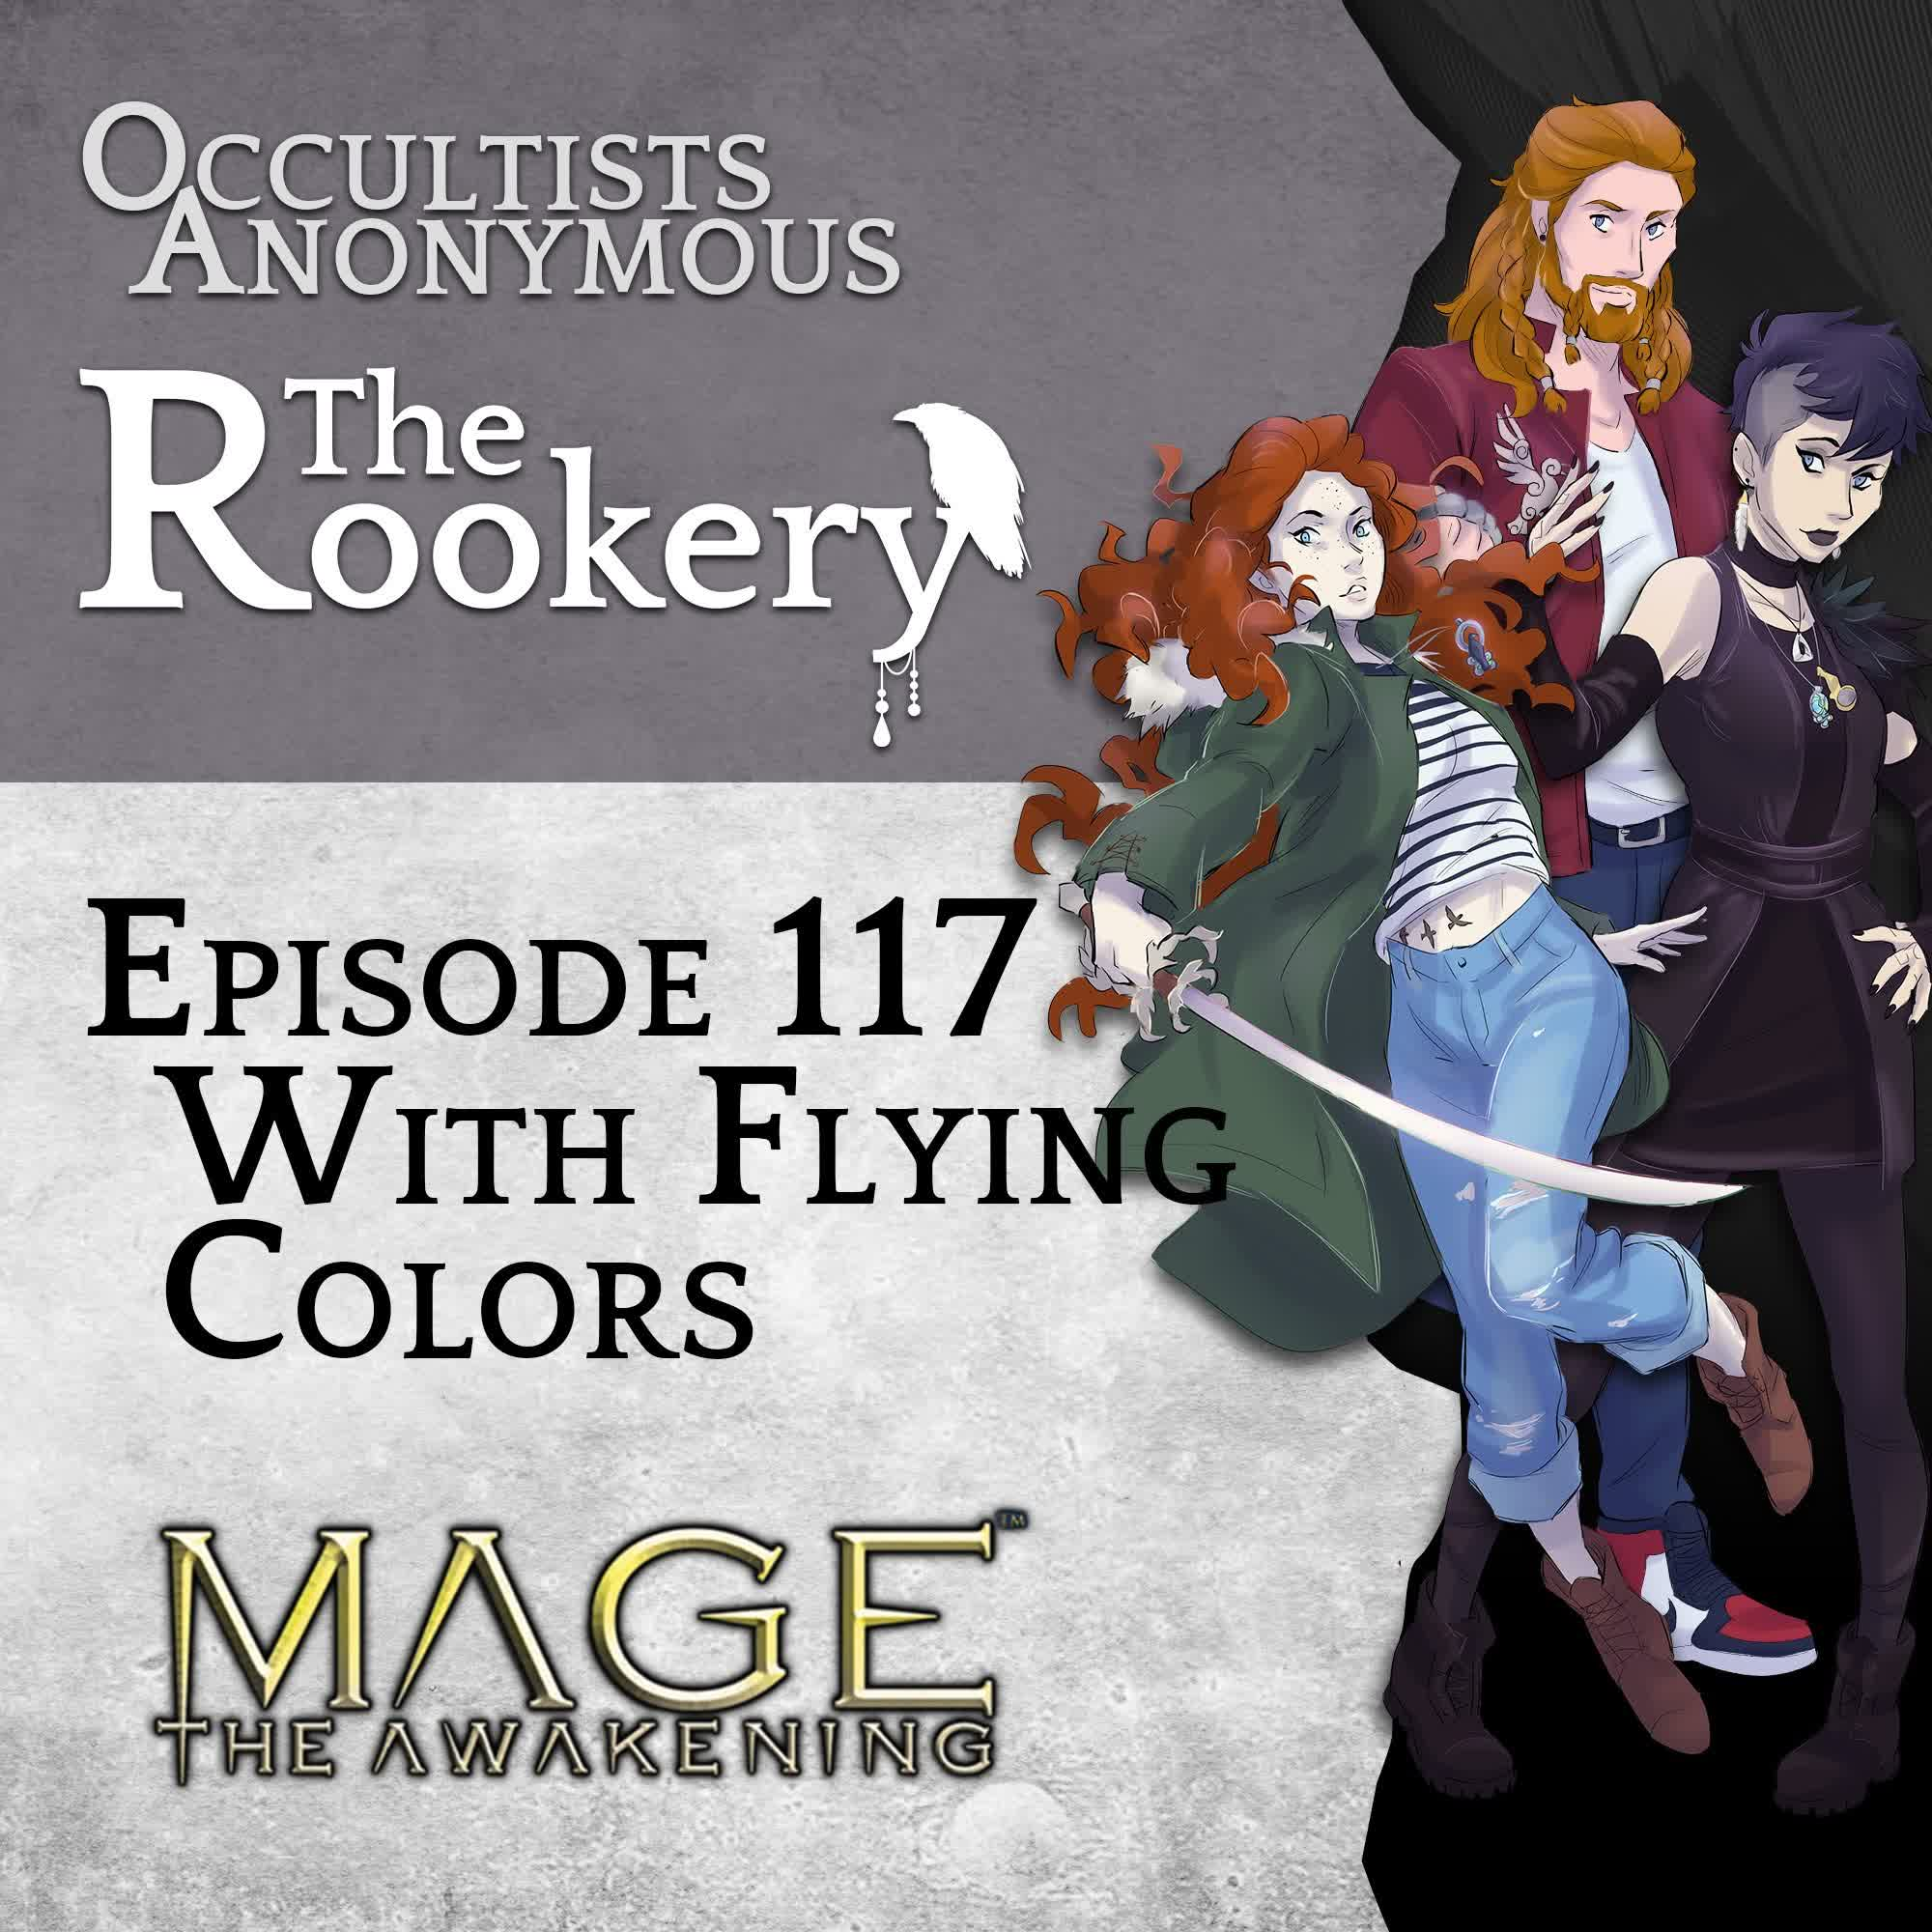 Episode 117: With Flying Colors